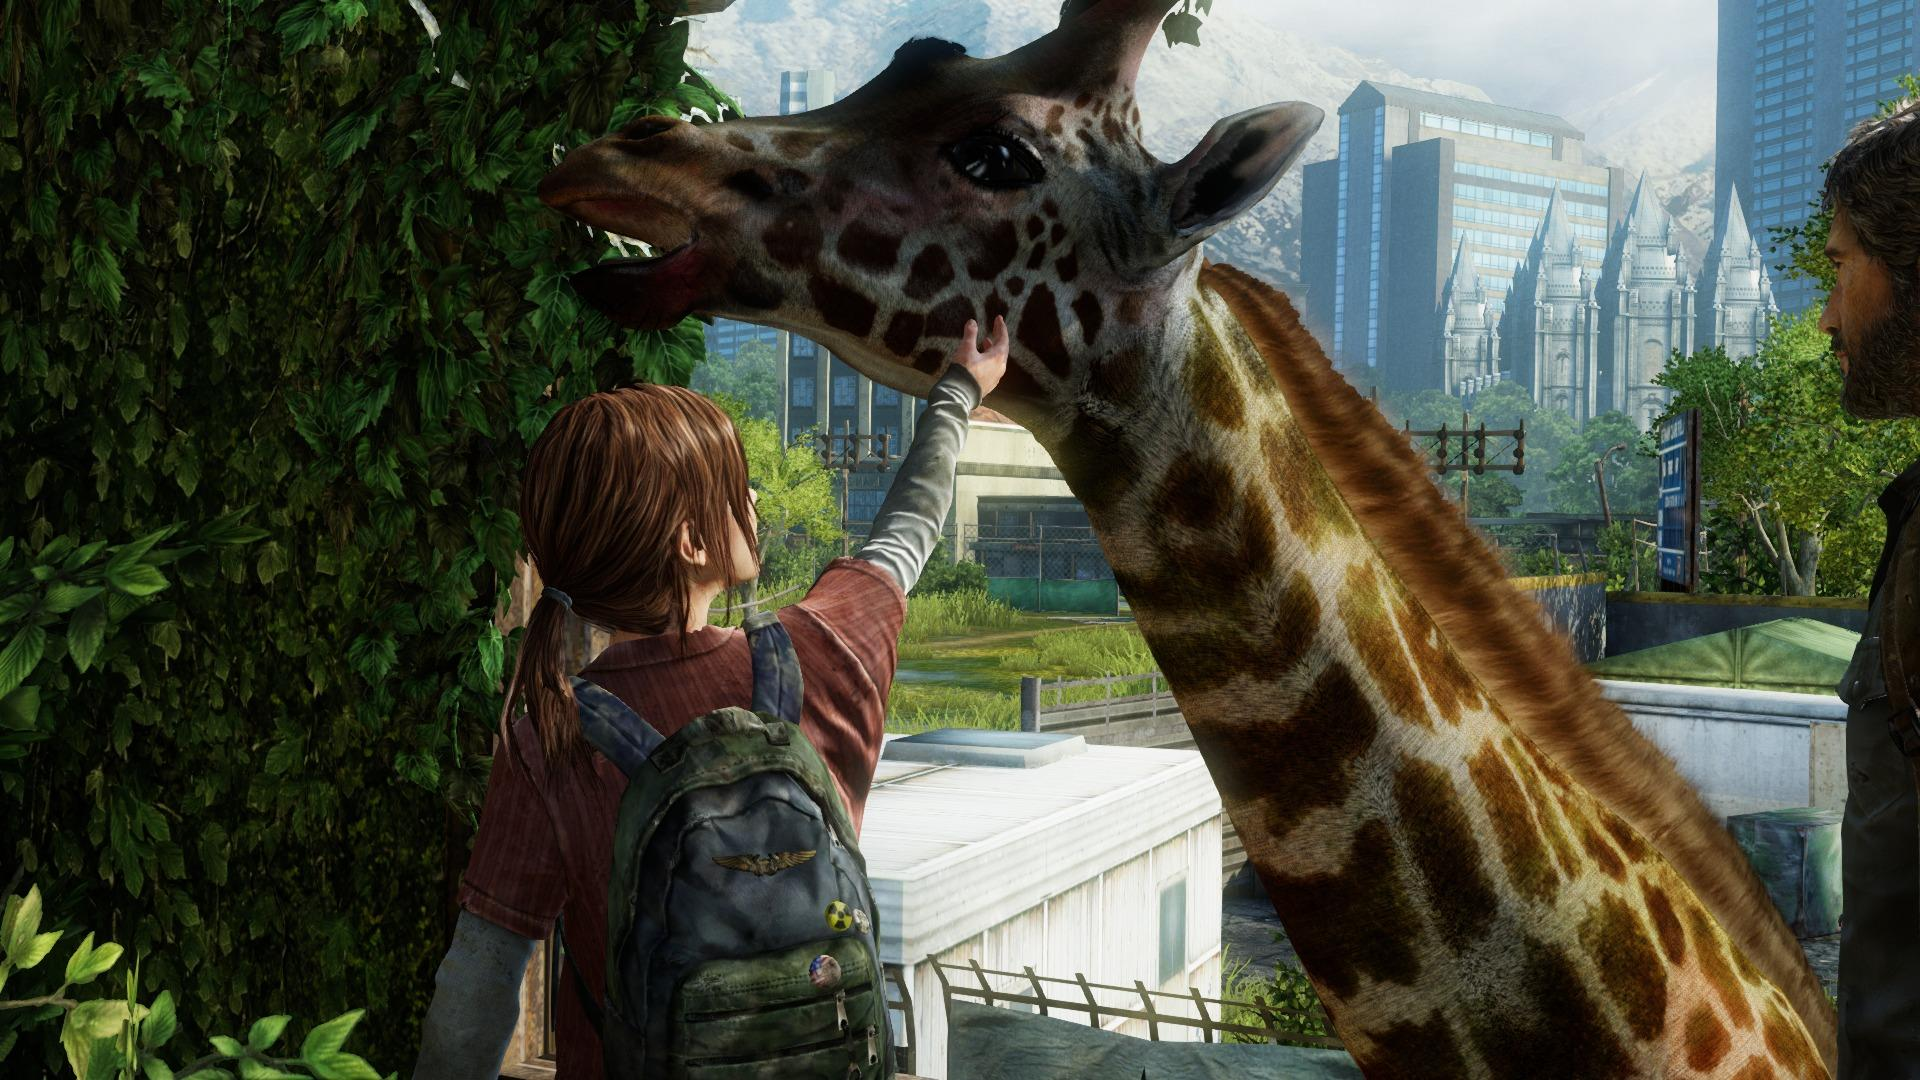 Naughty Dog Confirm The Last Of Us 2 Not Actively In Development the last of us giraffe scene